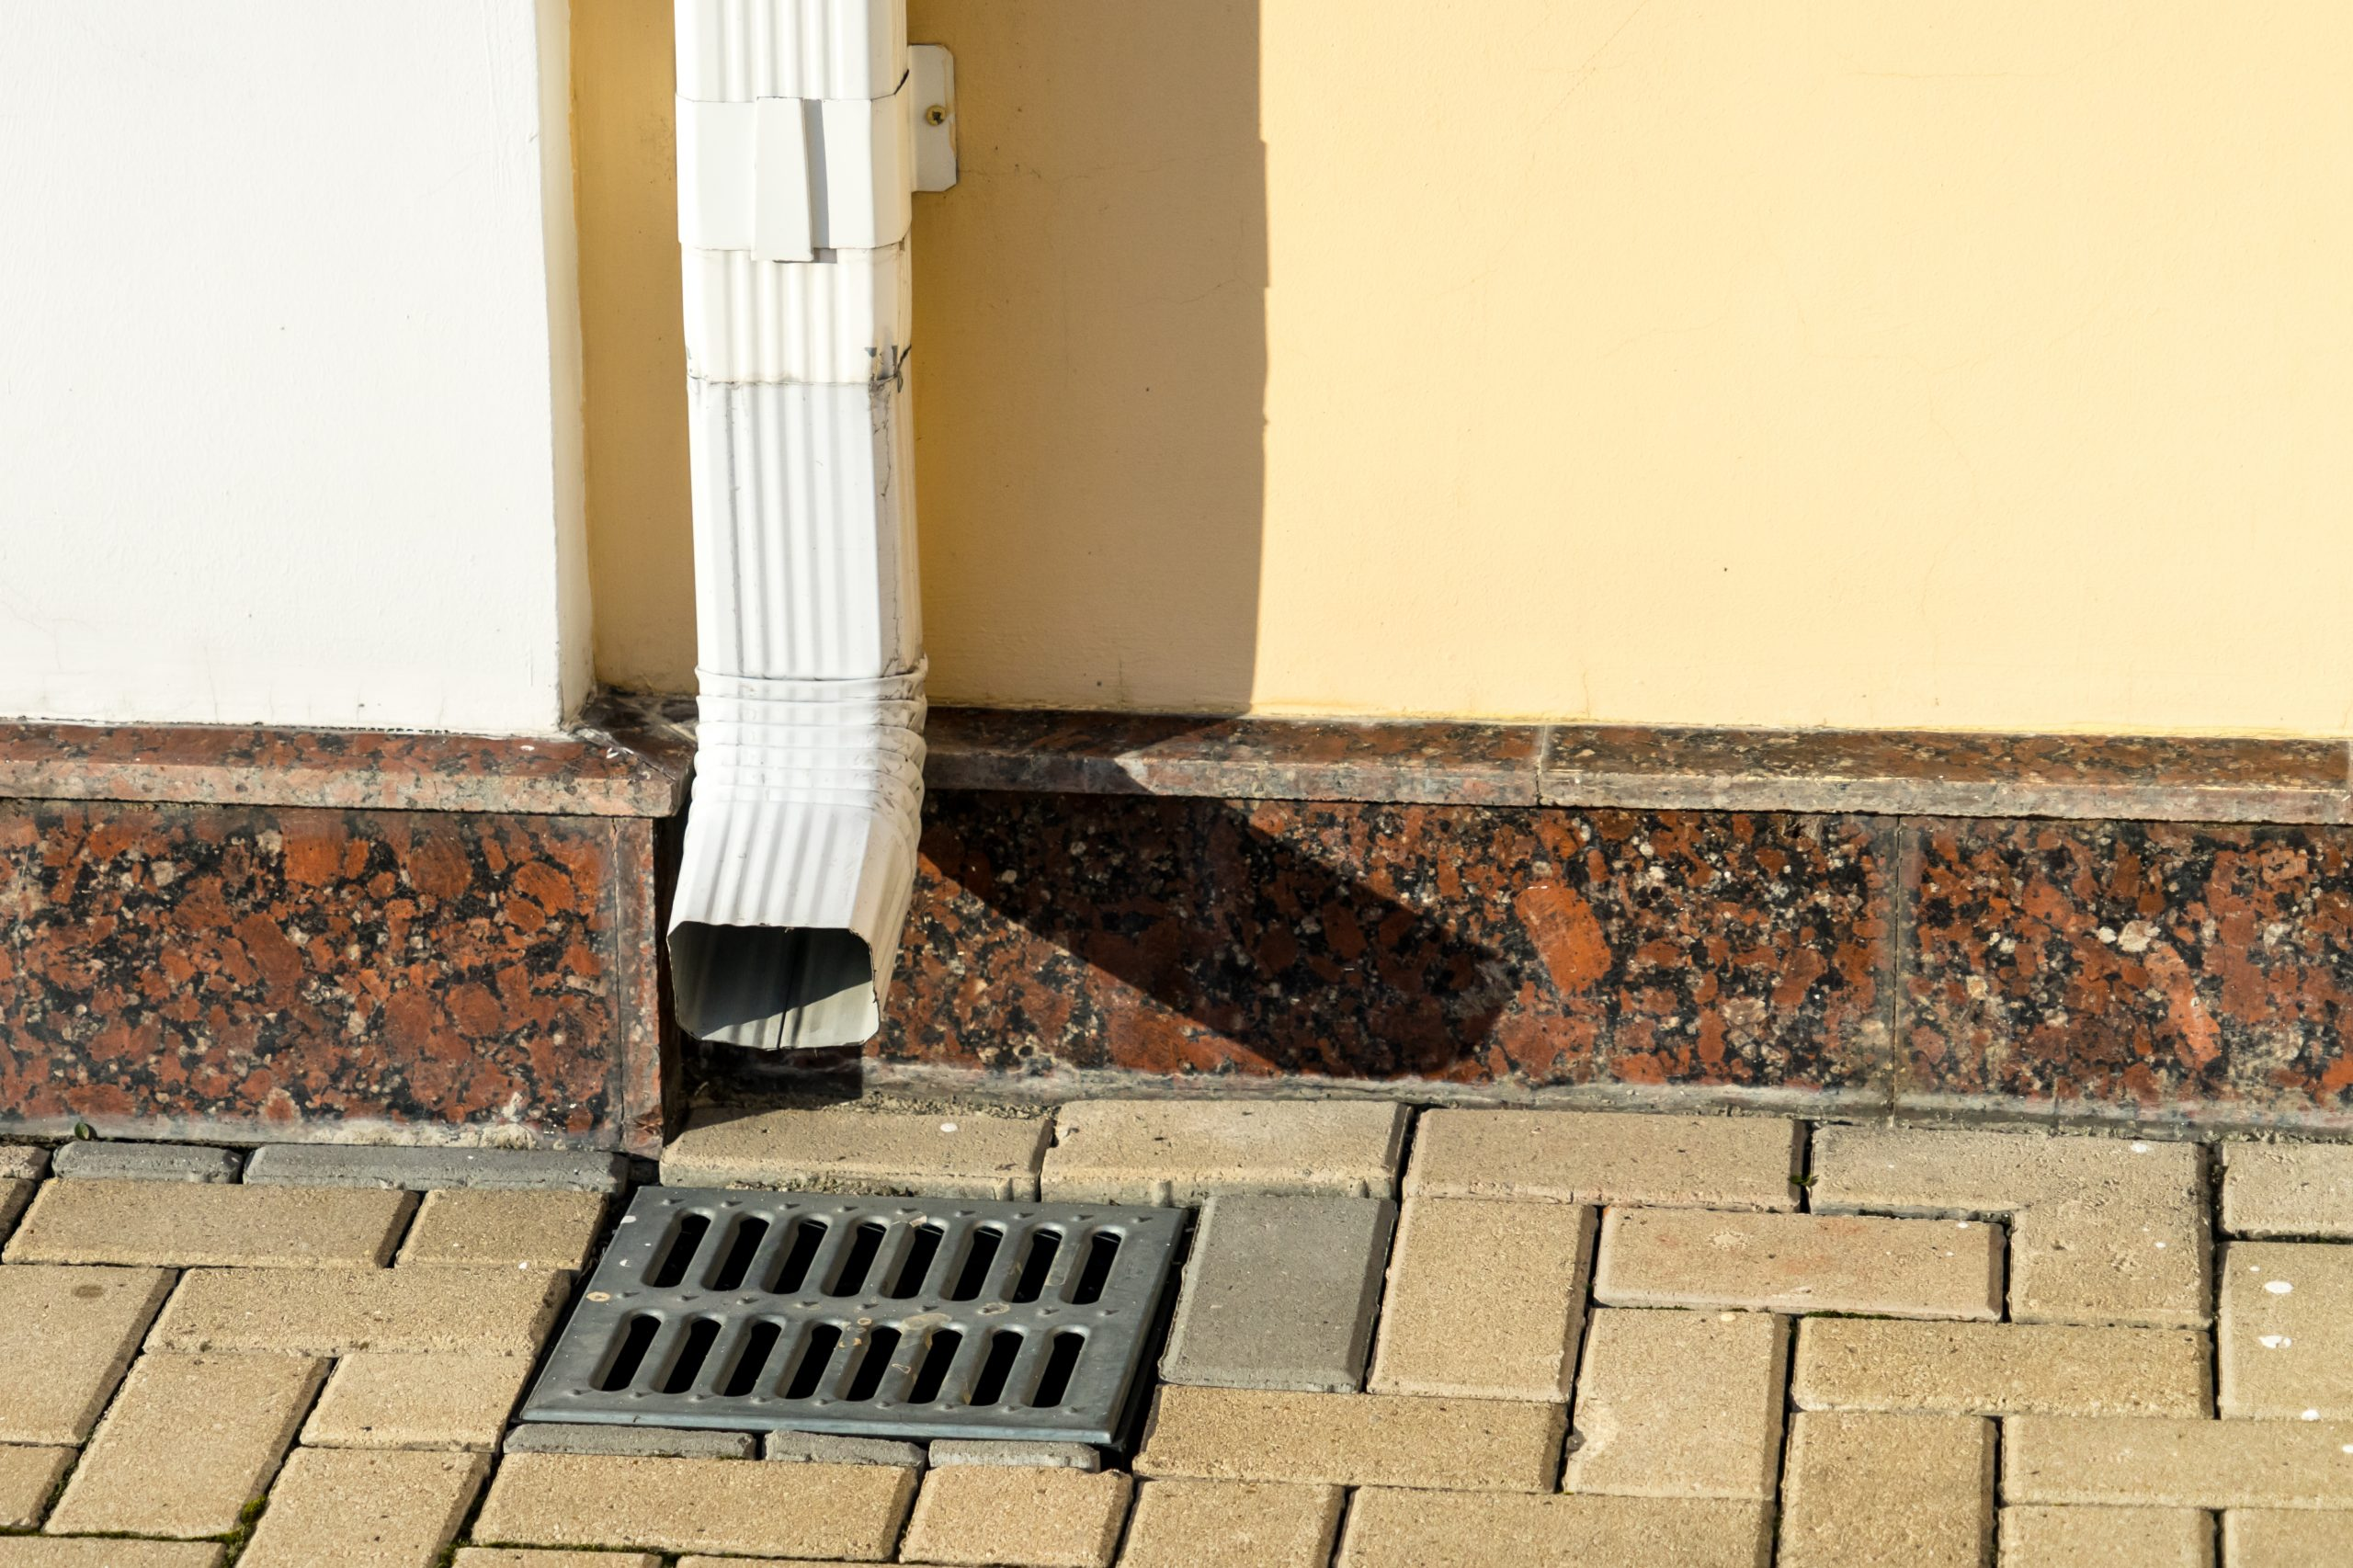 gutter drainage into grate in patio